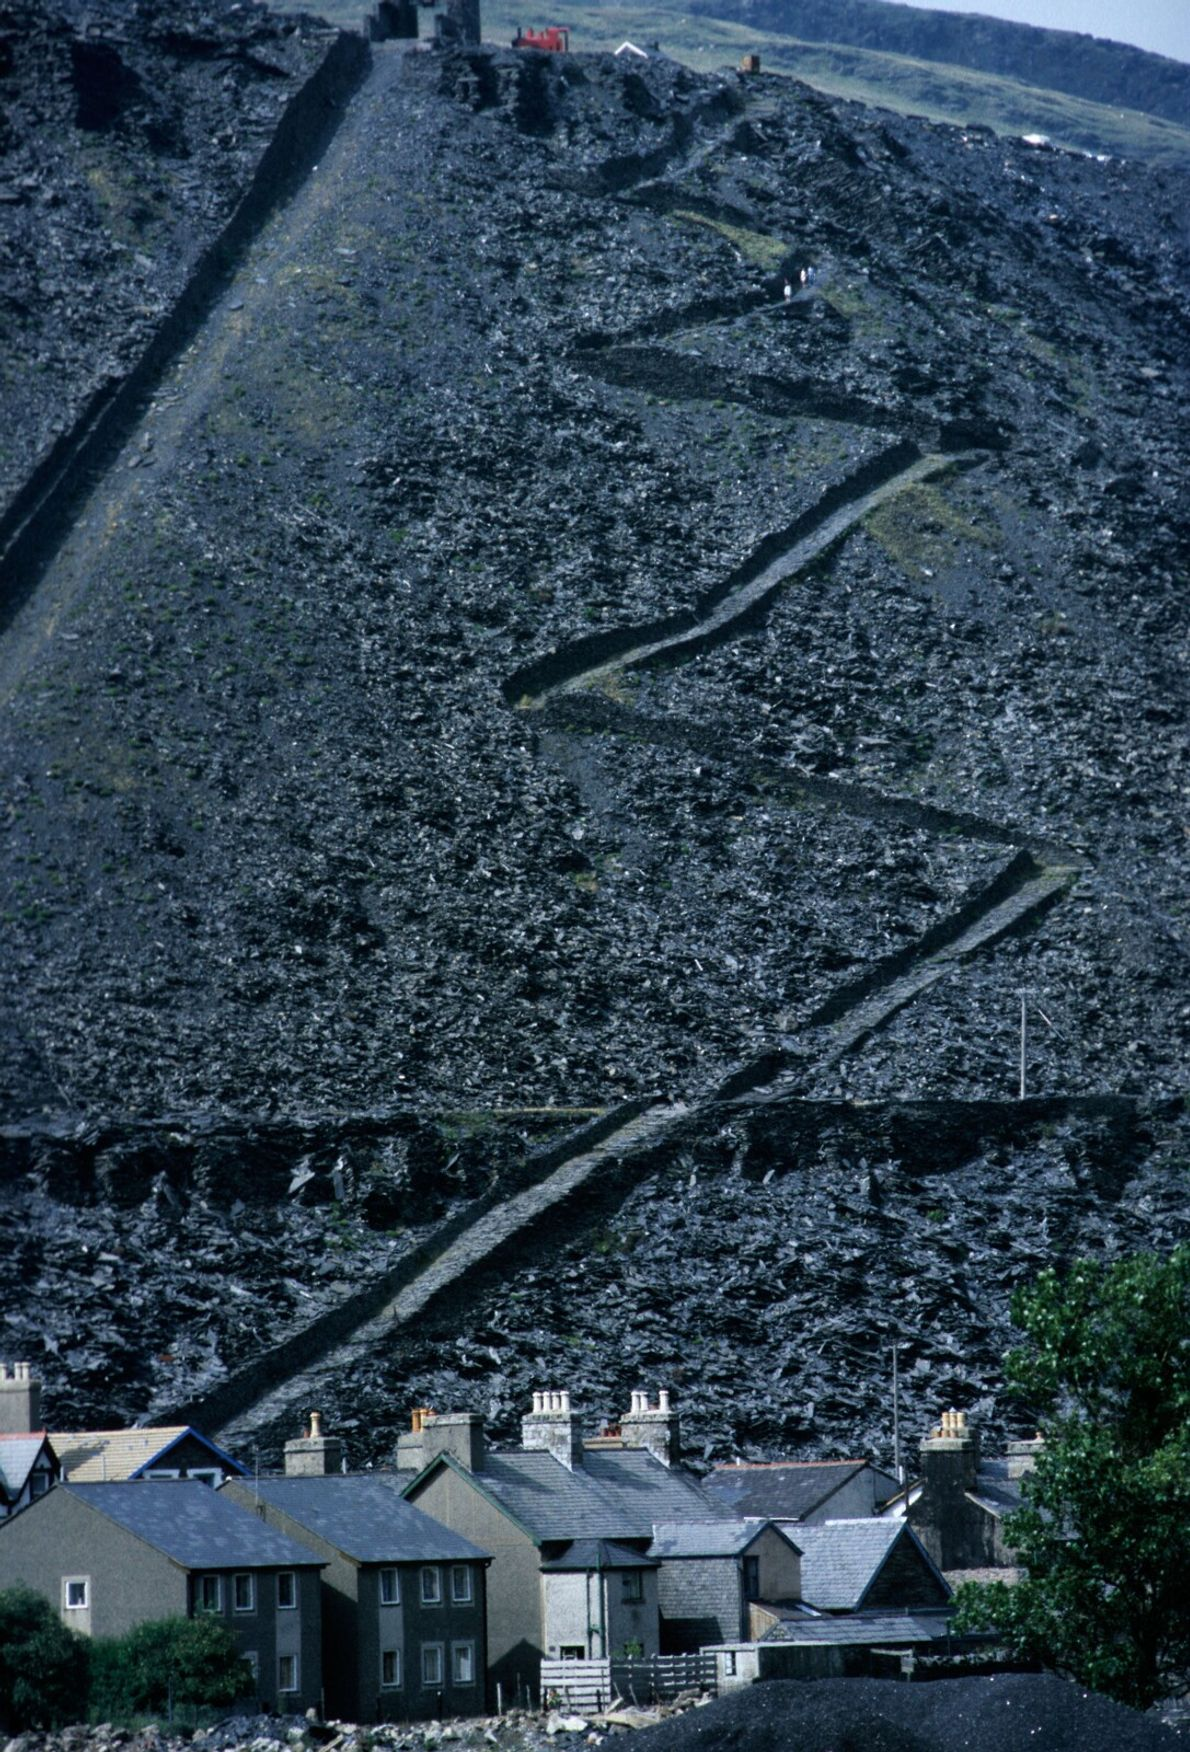 Spoil heaps with maintenance tracks tower above houses in Blaenau Ffestiniog. Most of the mines have ...